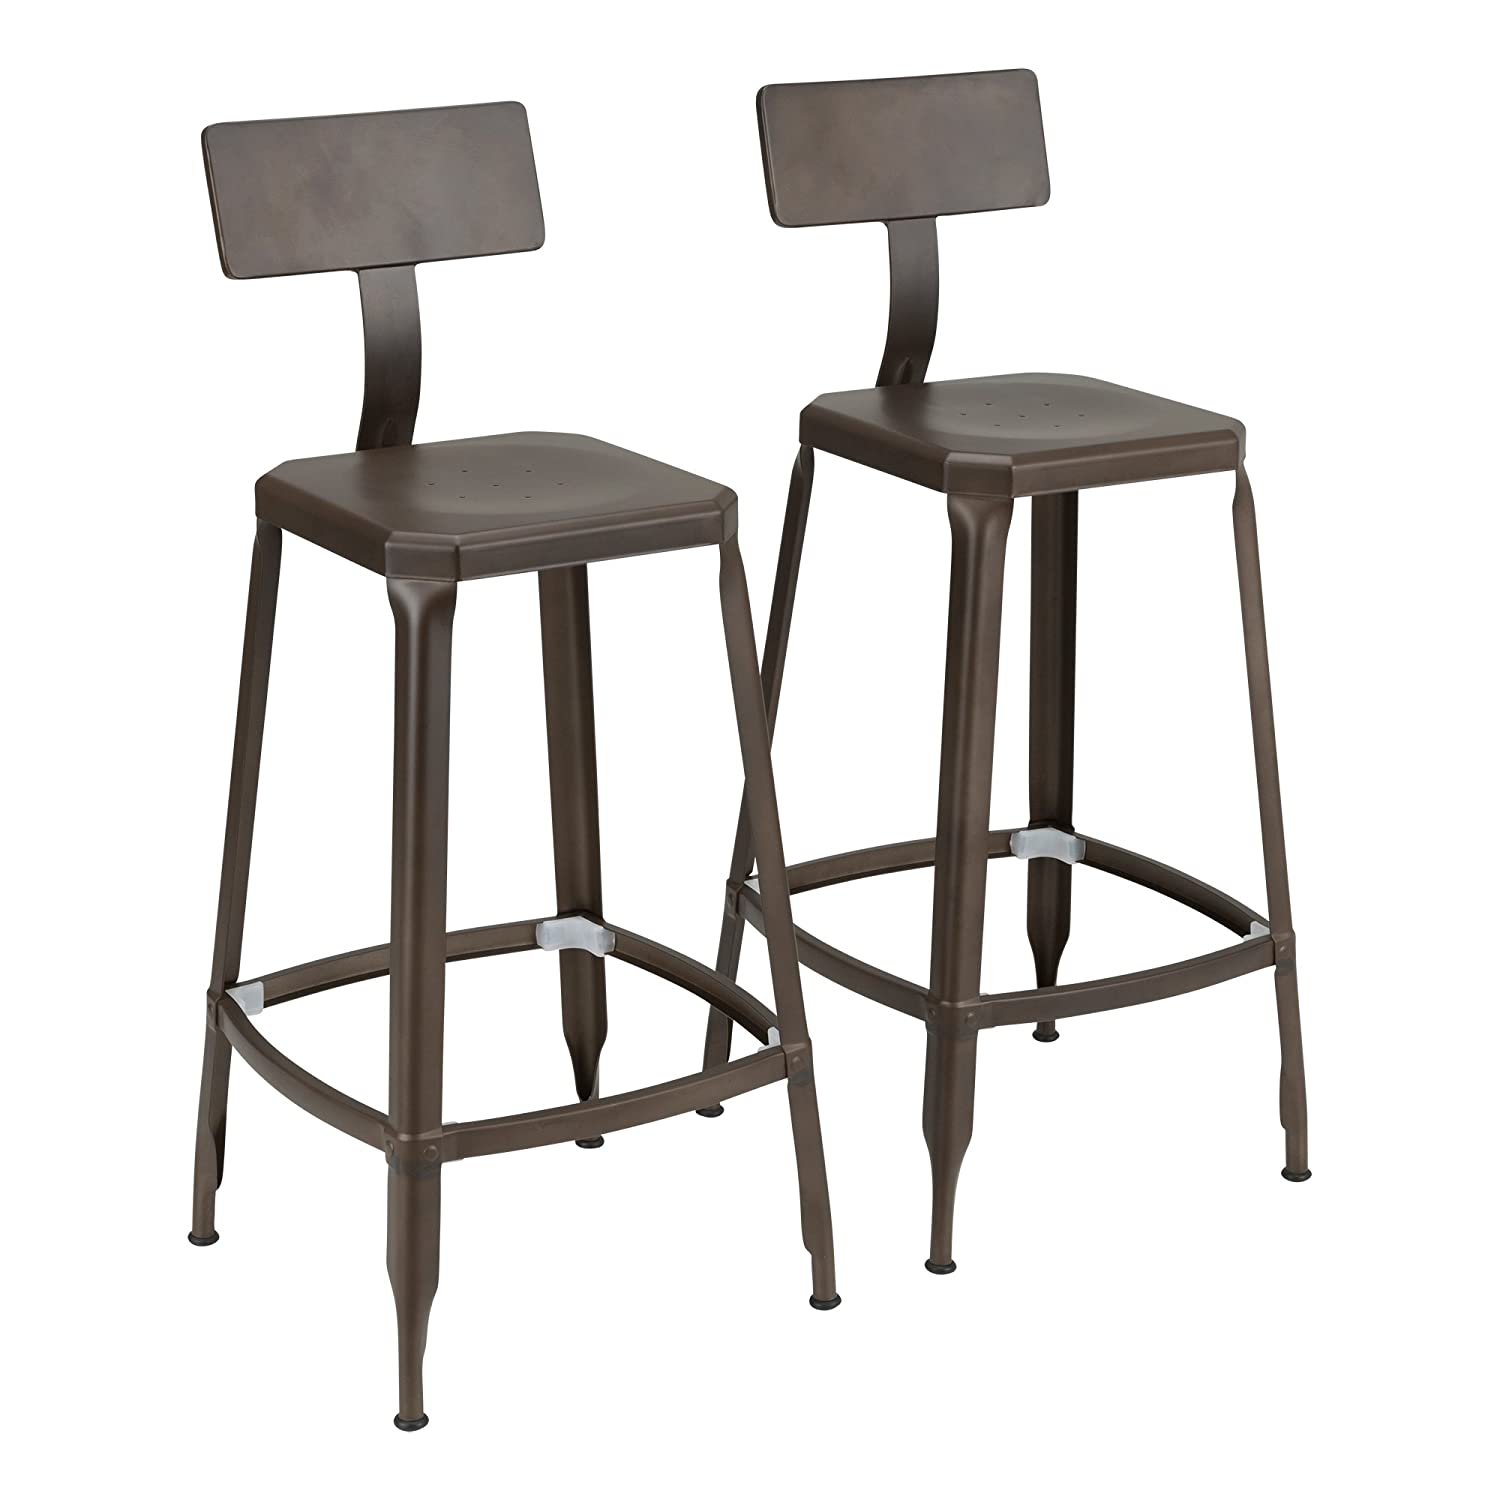 Fat Catalog ALT-GNE-1001BZ-SO Square Modern Industrial Metal Bar Stools w/Back, Bronze (Pack of 2)